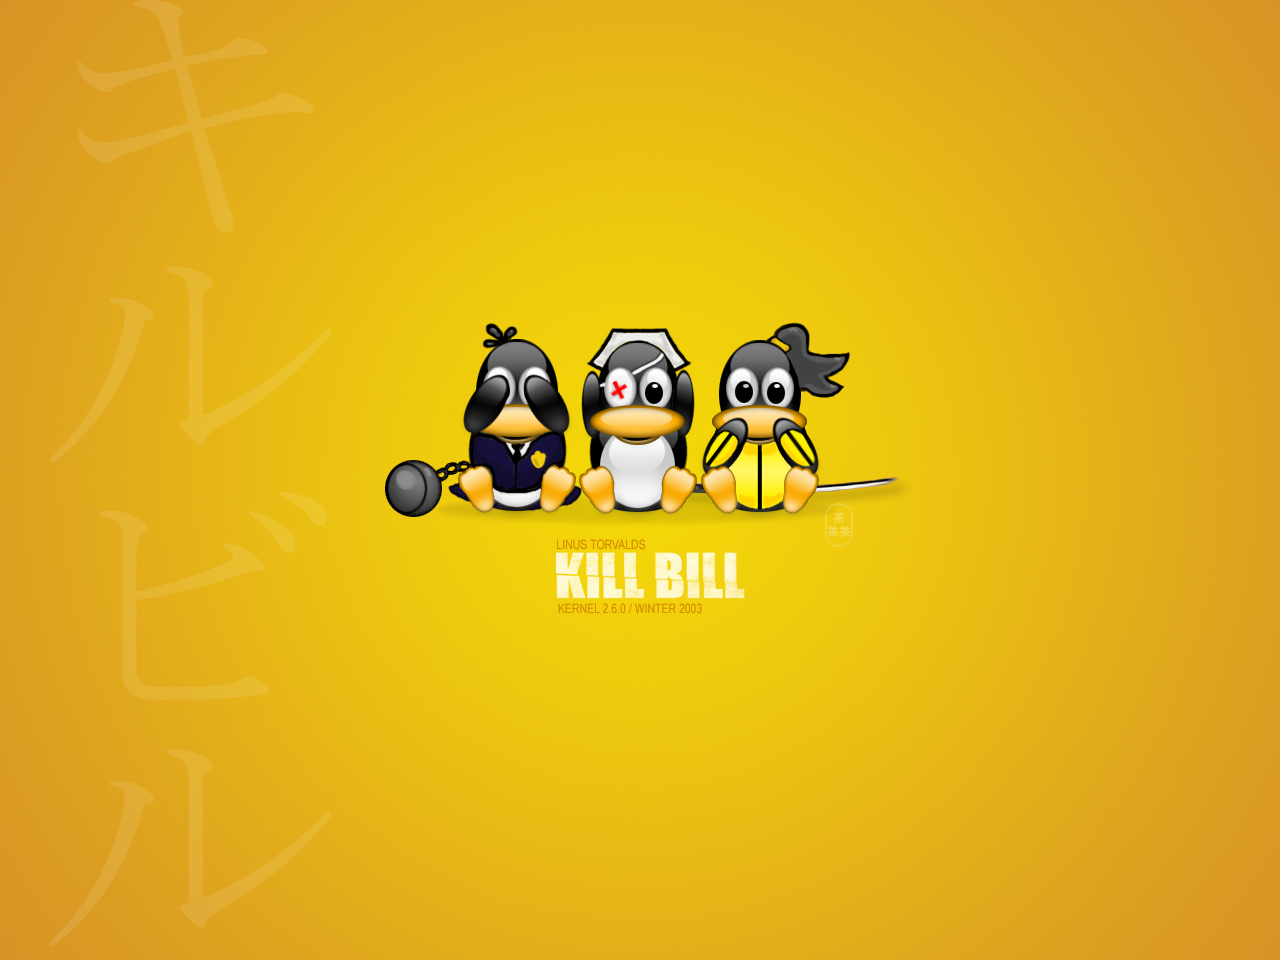 Kill Bill Penguins HD Wallpaper